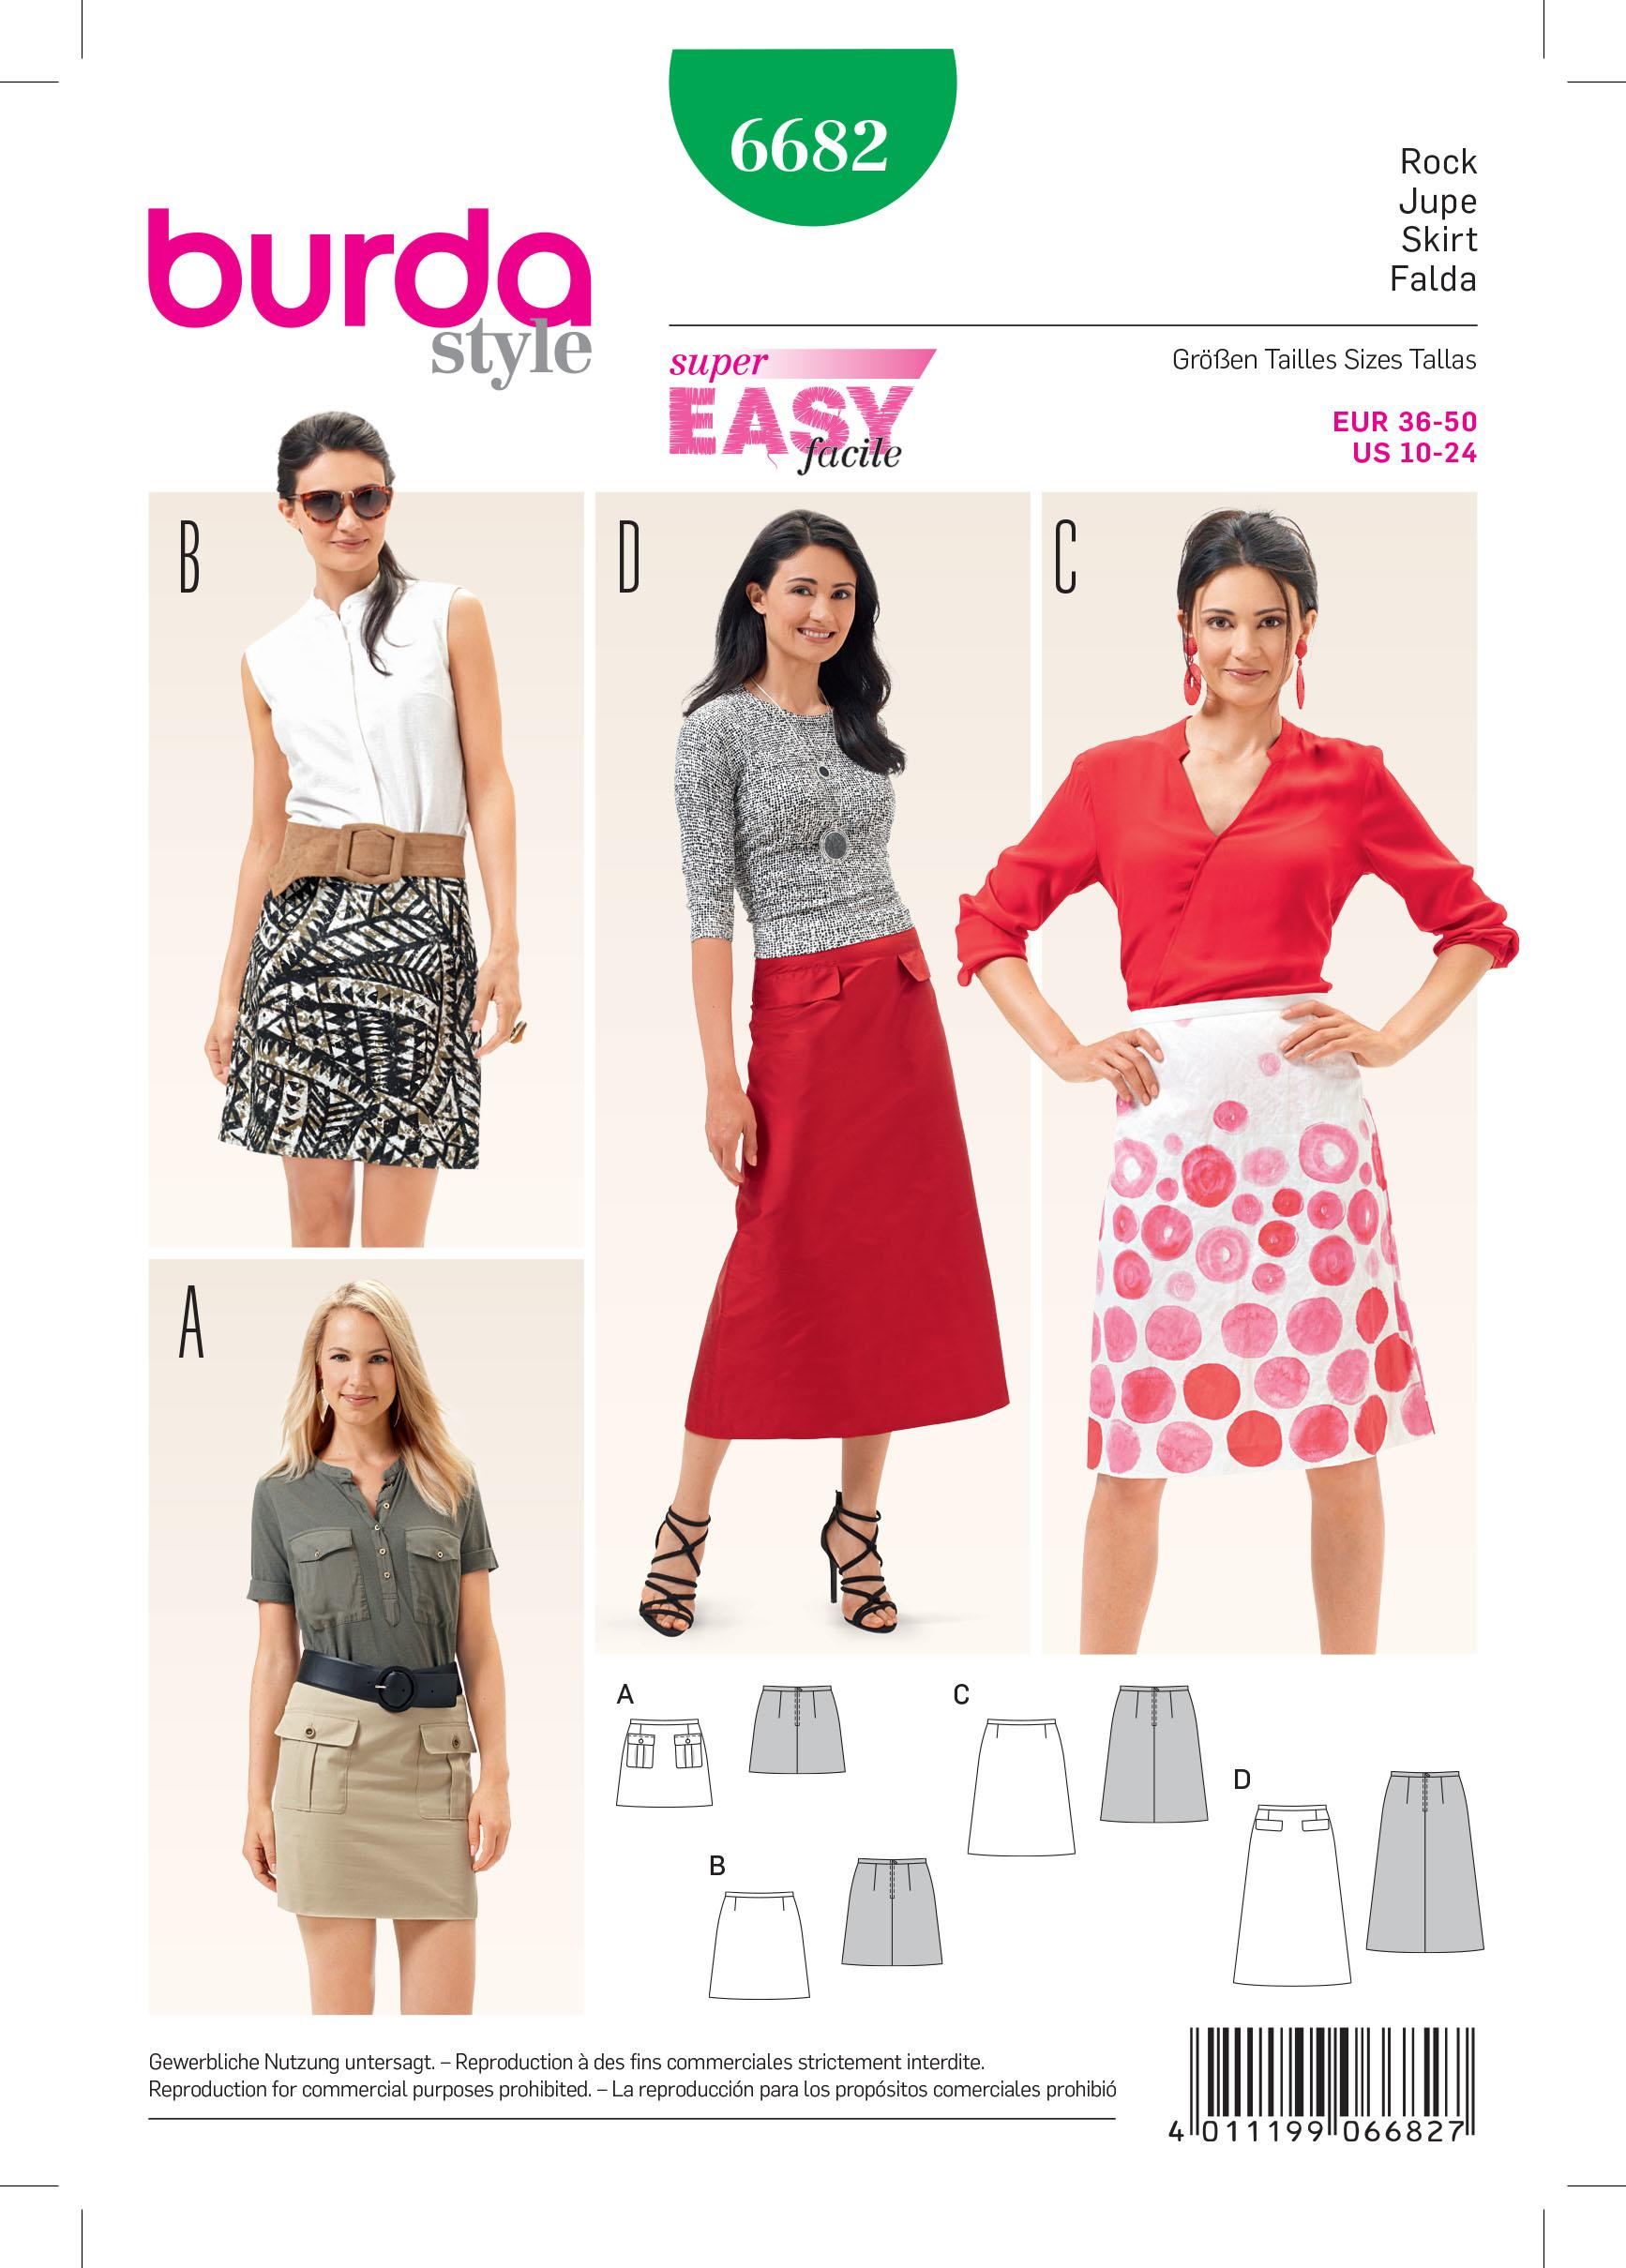 Burda B6682 Women's Skirt Sewing Pattern